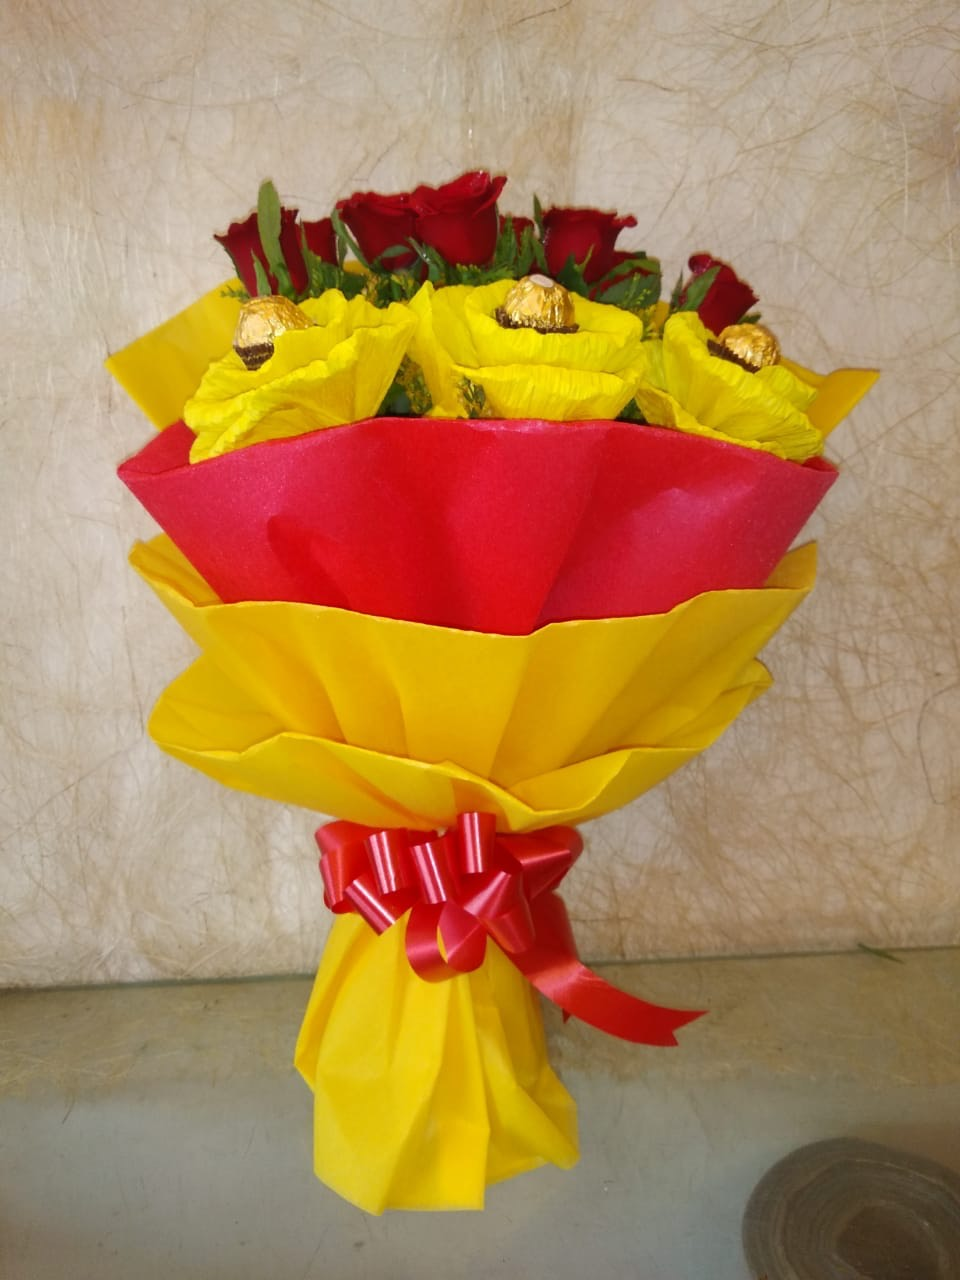 Flowers Delivery in Sector 42 GurgaonRed Roses Ferrero Rocher Bunch